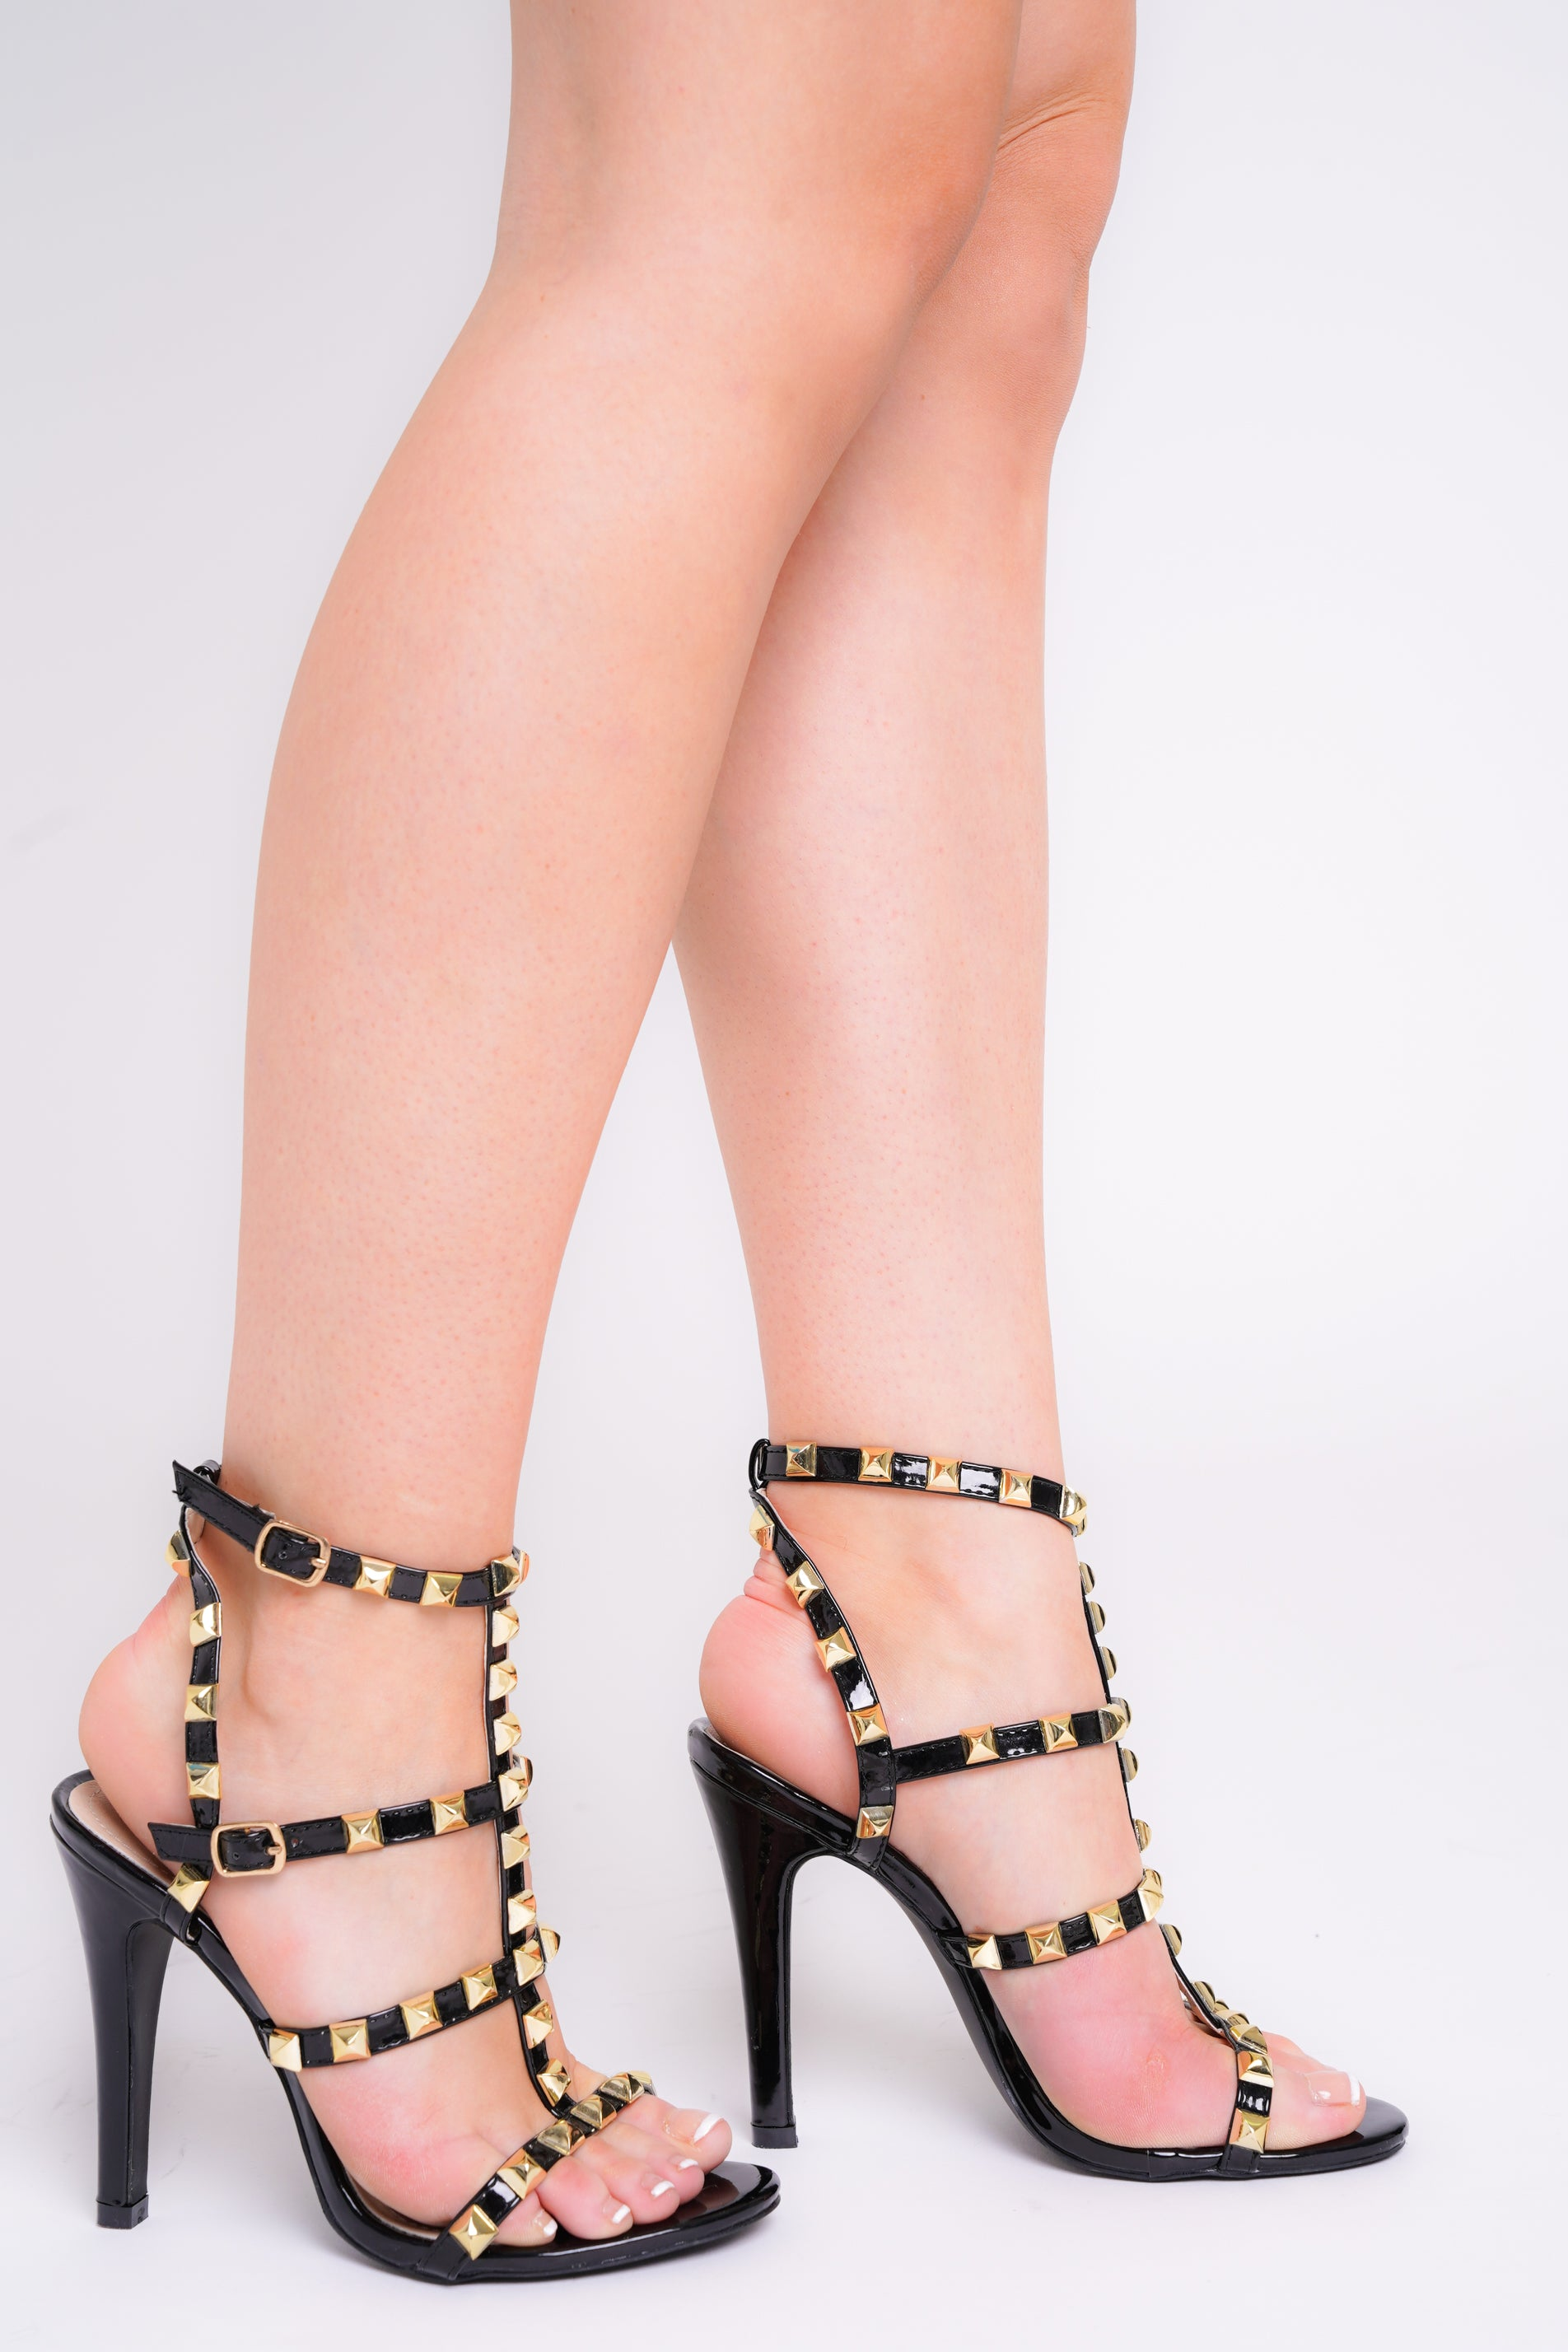 Gianna Black Spike Cage Stiletto Heels